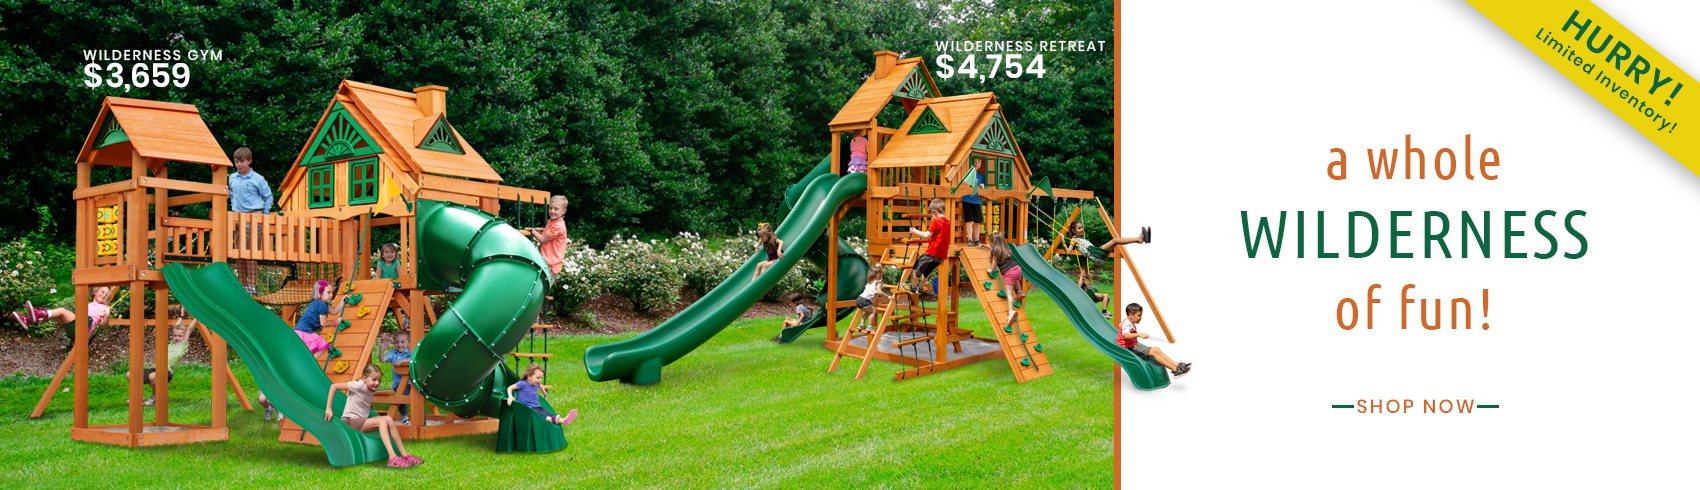 Discover a wilderness of fun with the Wilderness Gym and Wilderness Retreat Play sets!